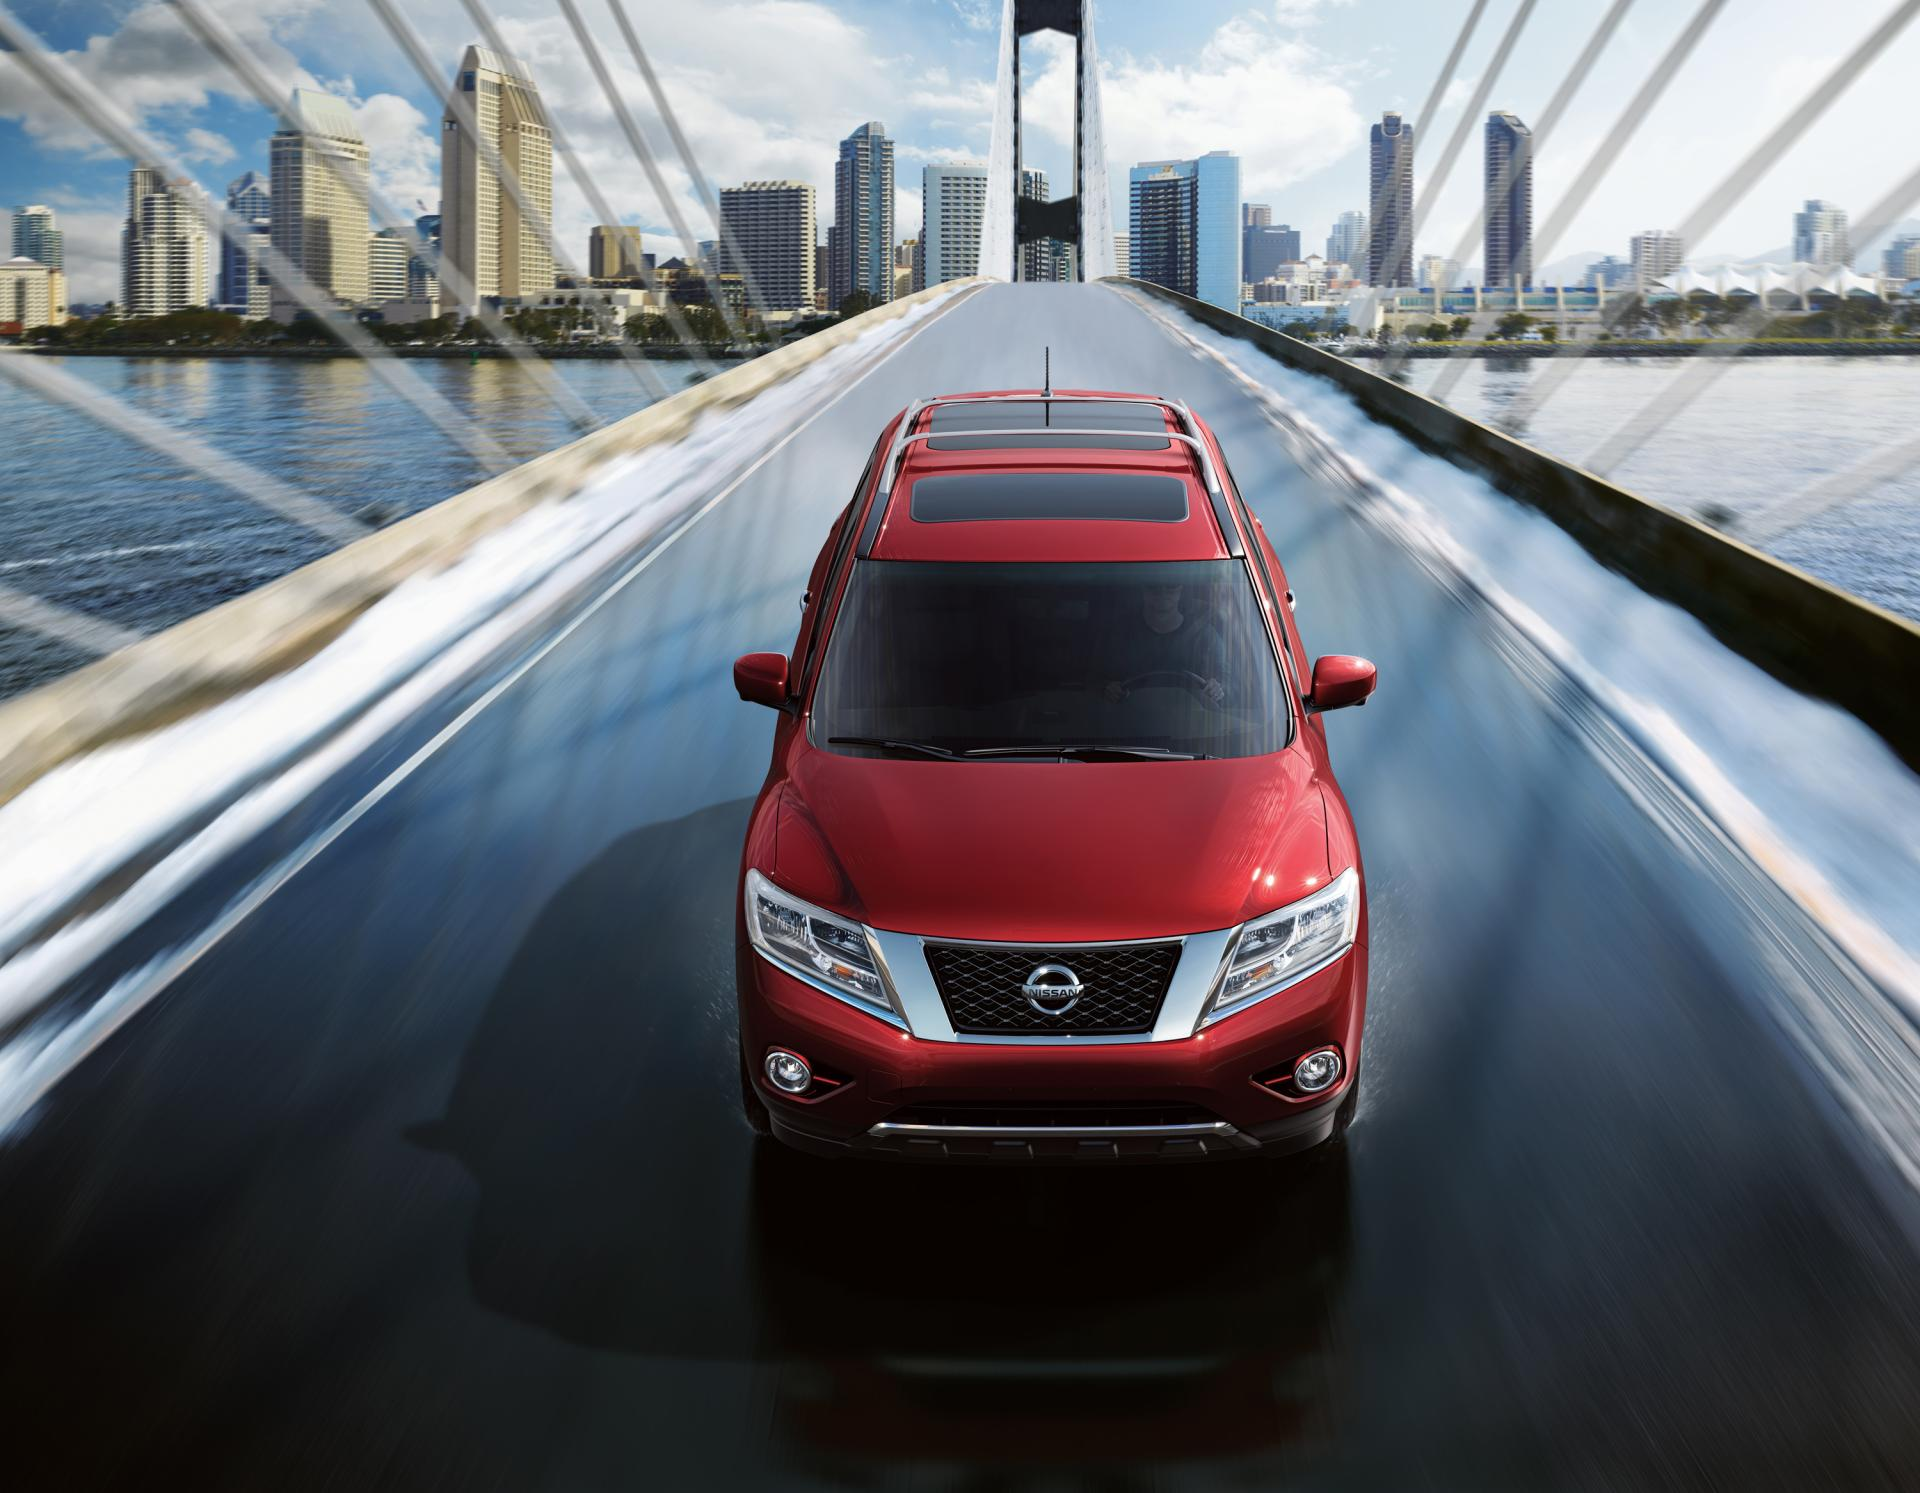 2012 Nissan Pathfinder Concept News and Information Research and